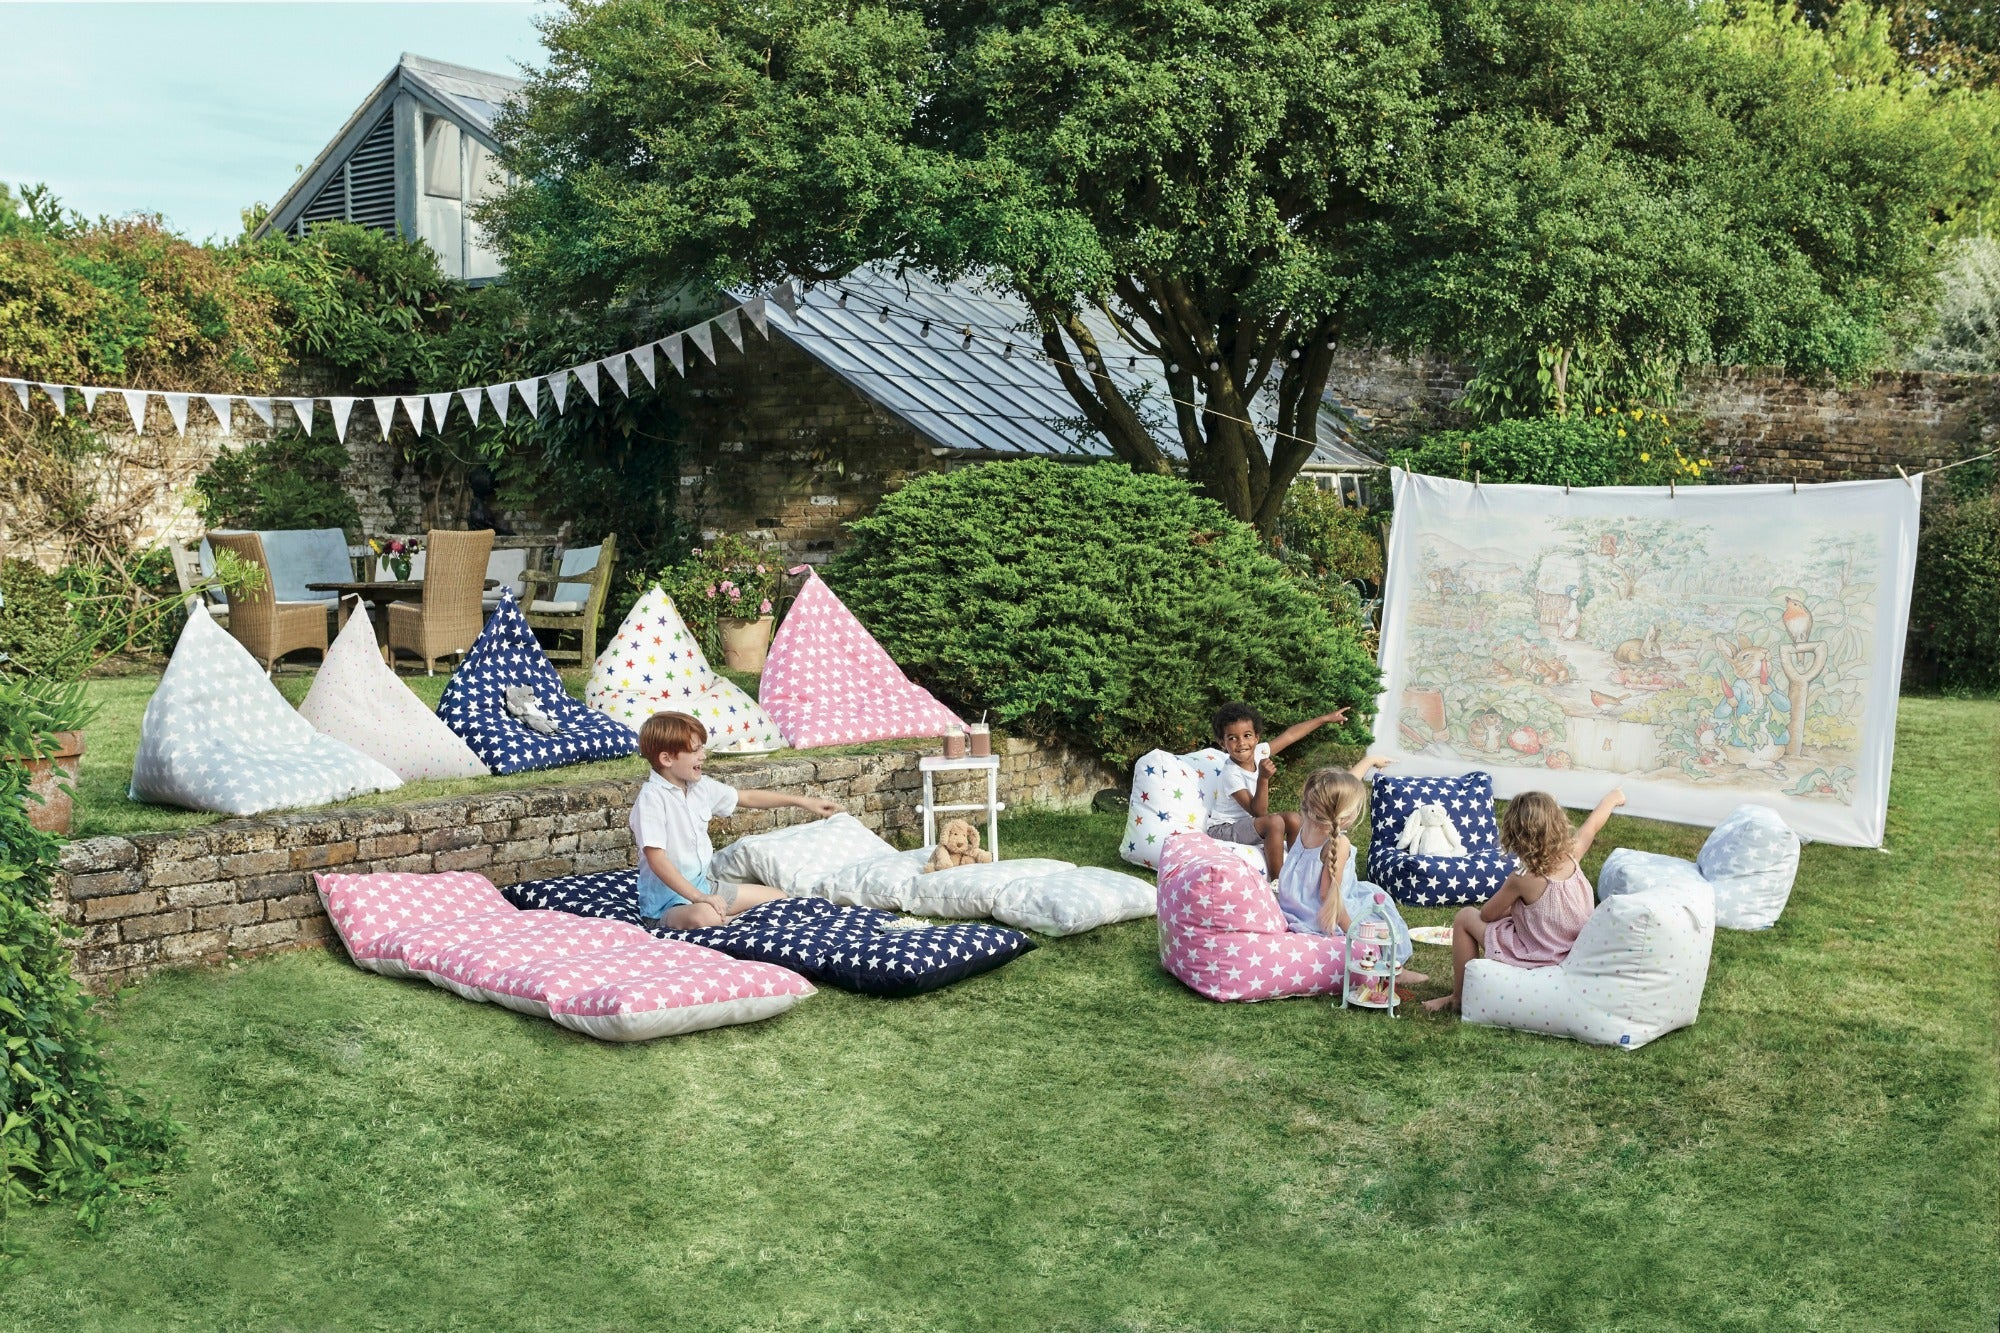 The Great Outdoors: Festival Fun At Home